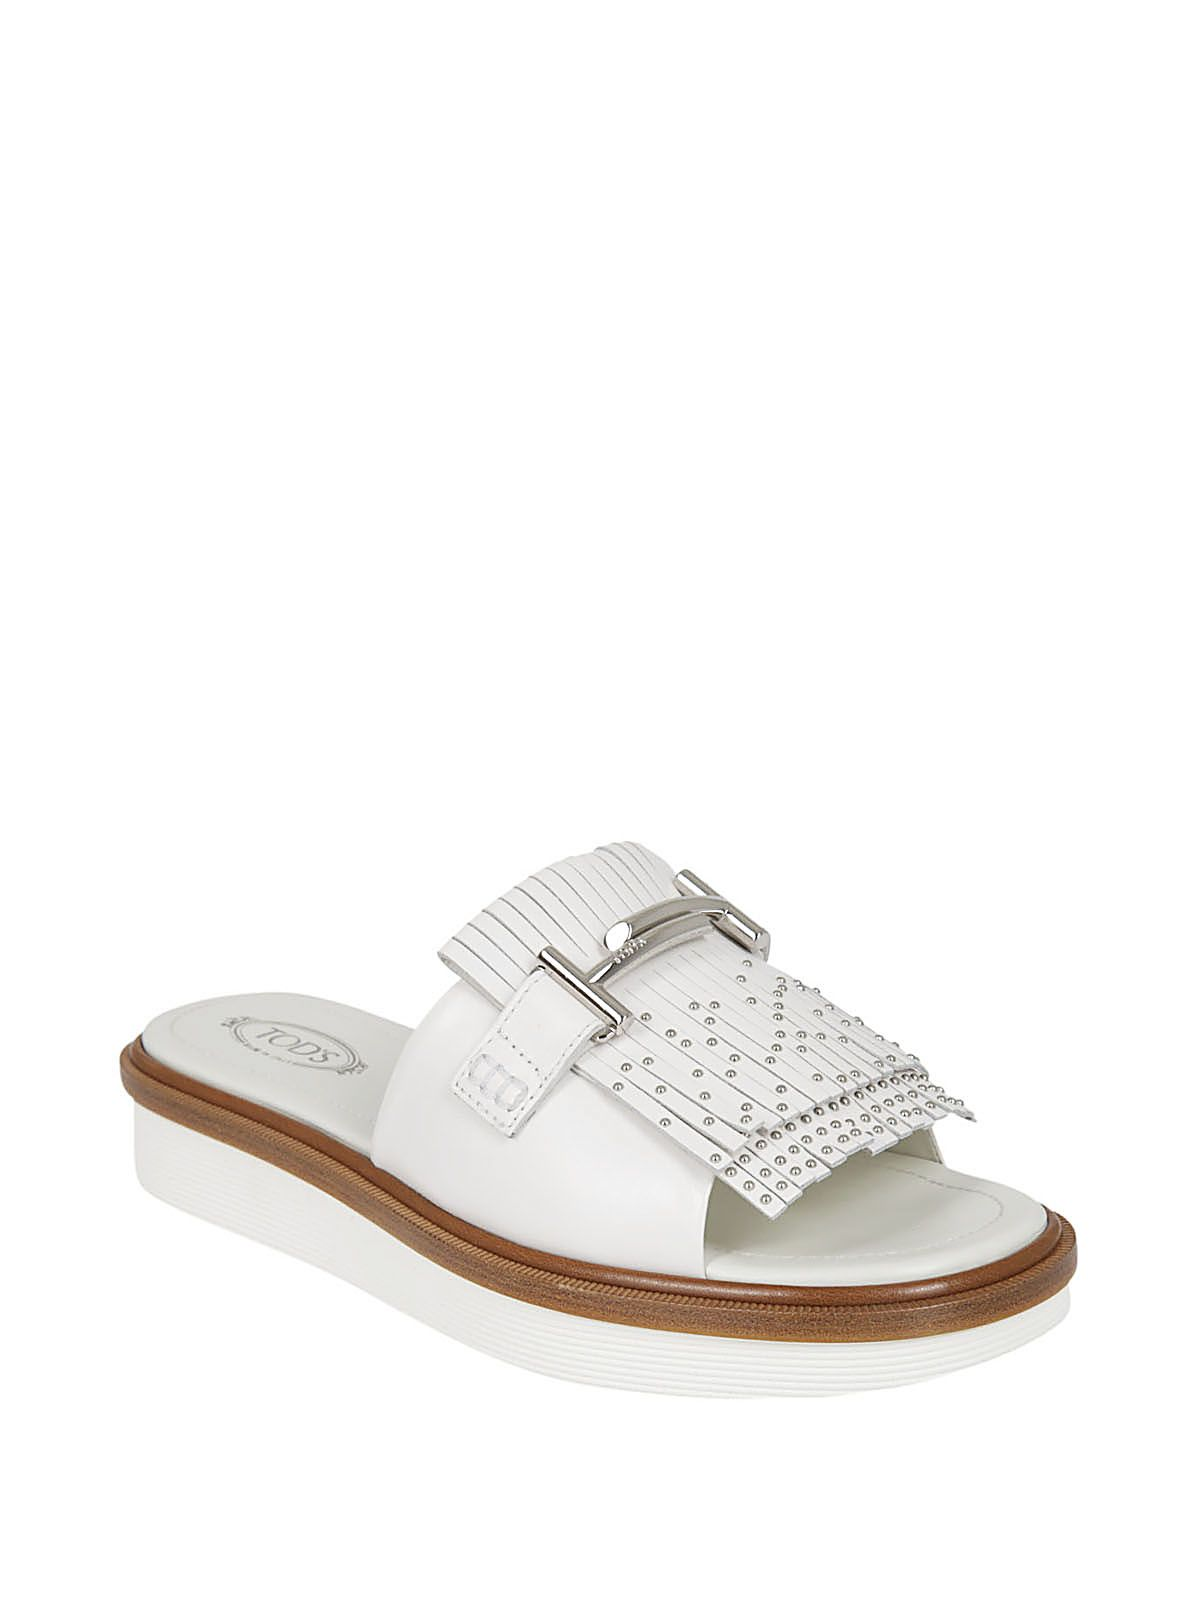 Buy Cheap Visit New Store Sale Tod's Fringe Studs Sandals Cheap Many Kinds Of Outlet The Cheapest rFMPkm2NT